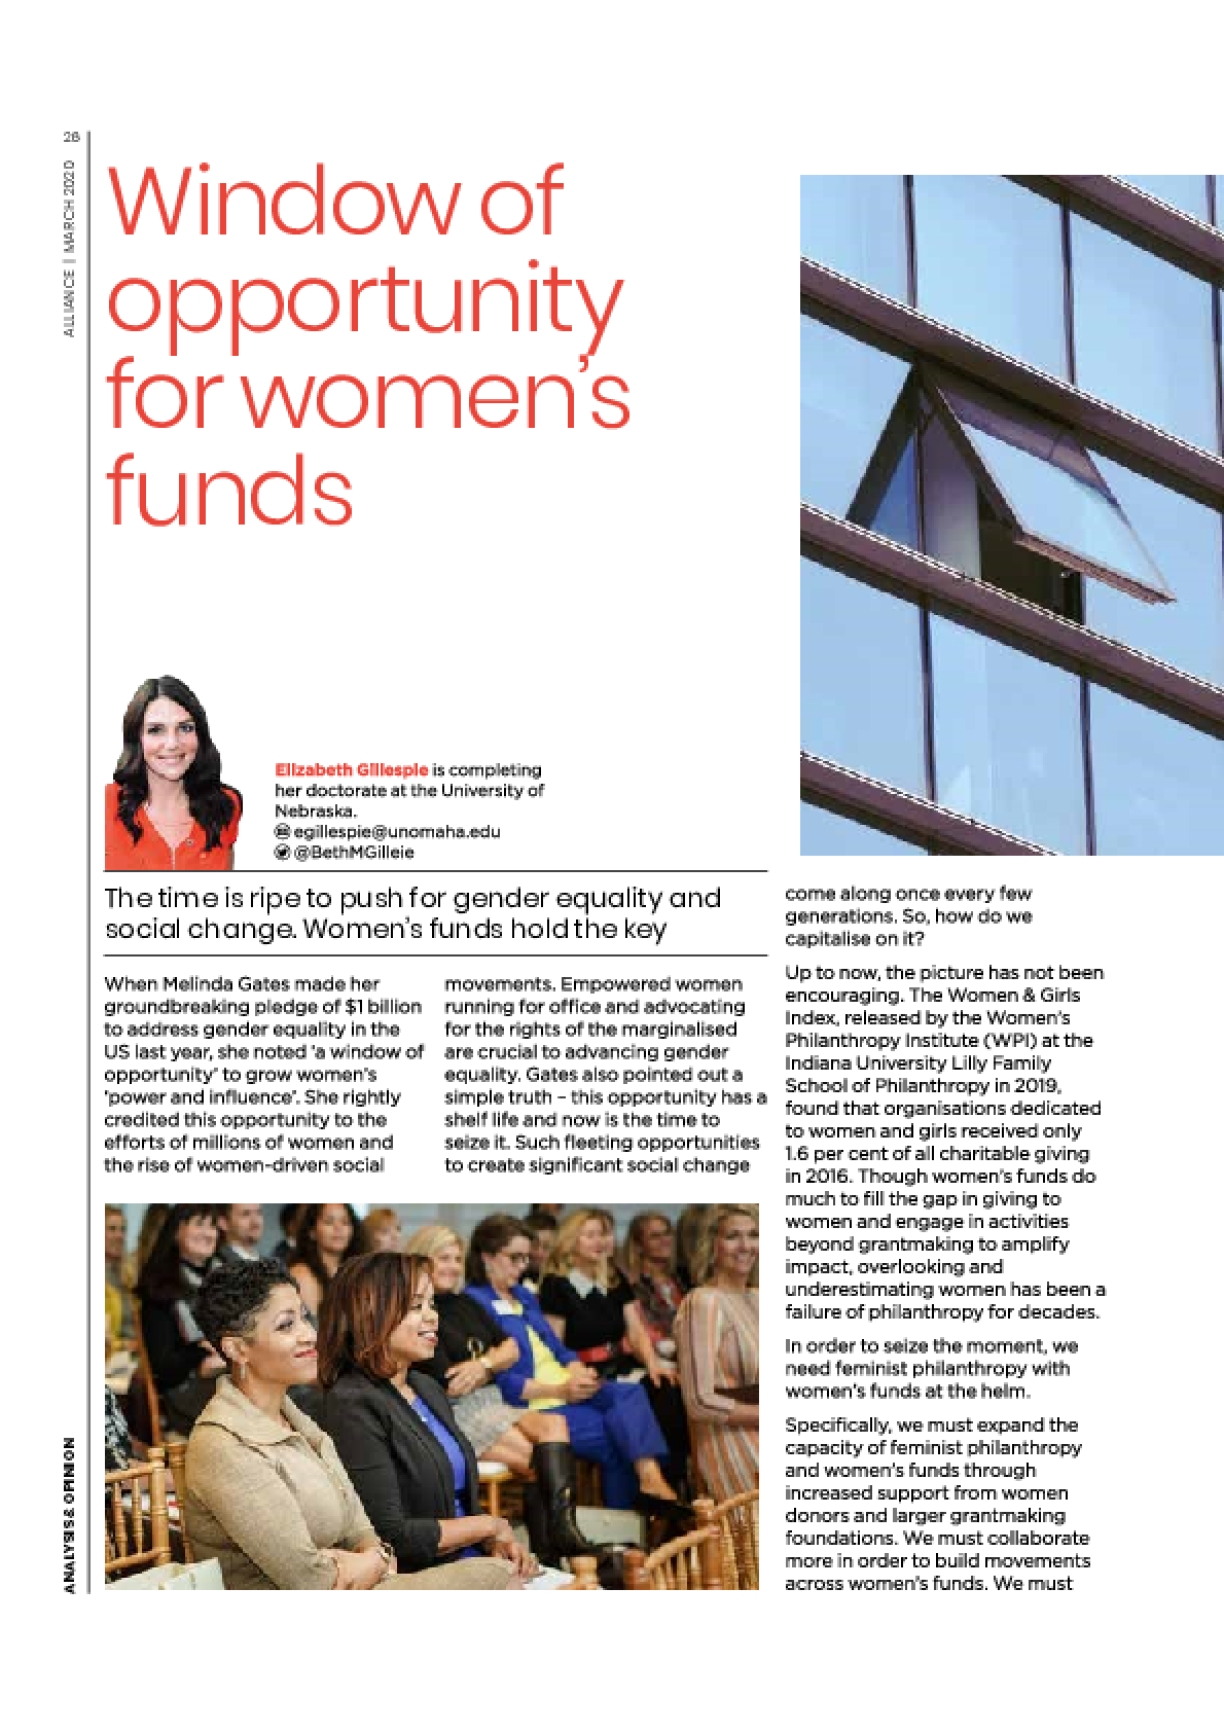 Window of opportunity for women's funds